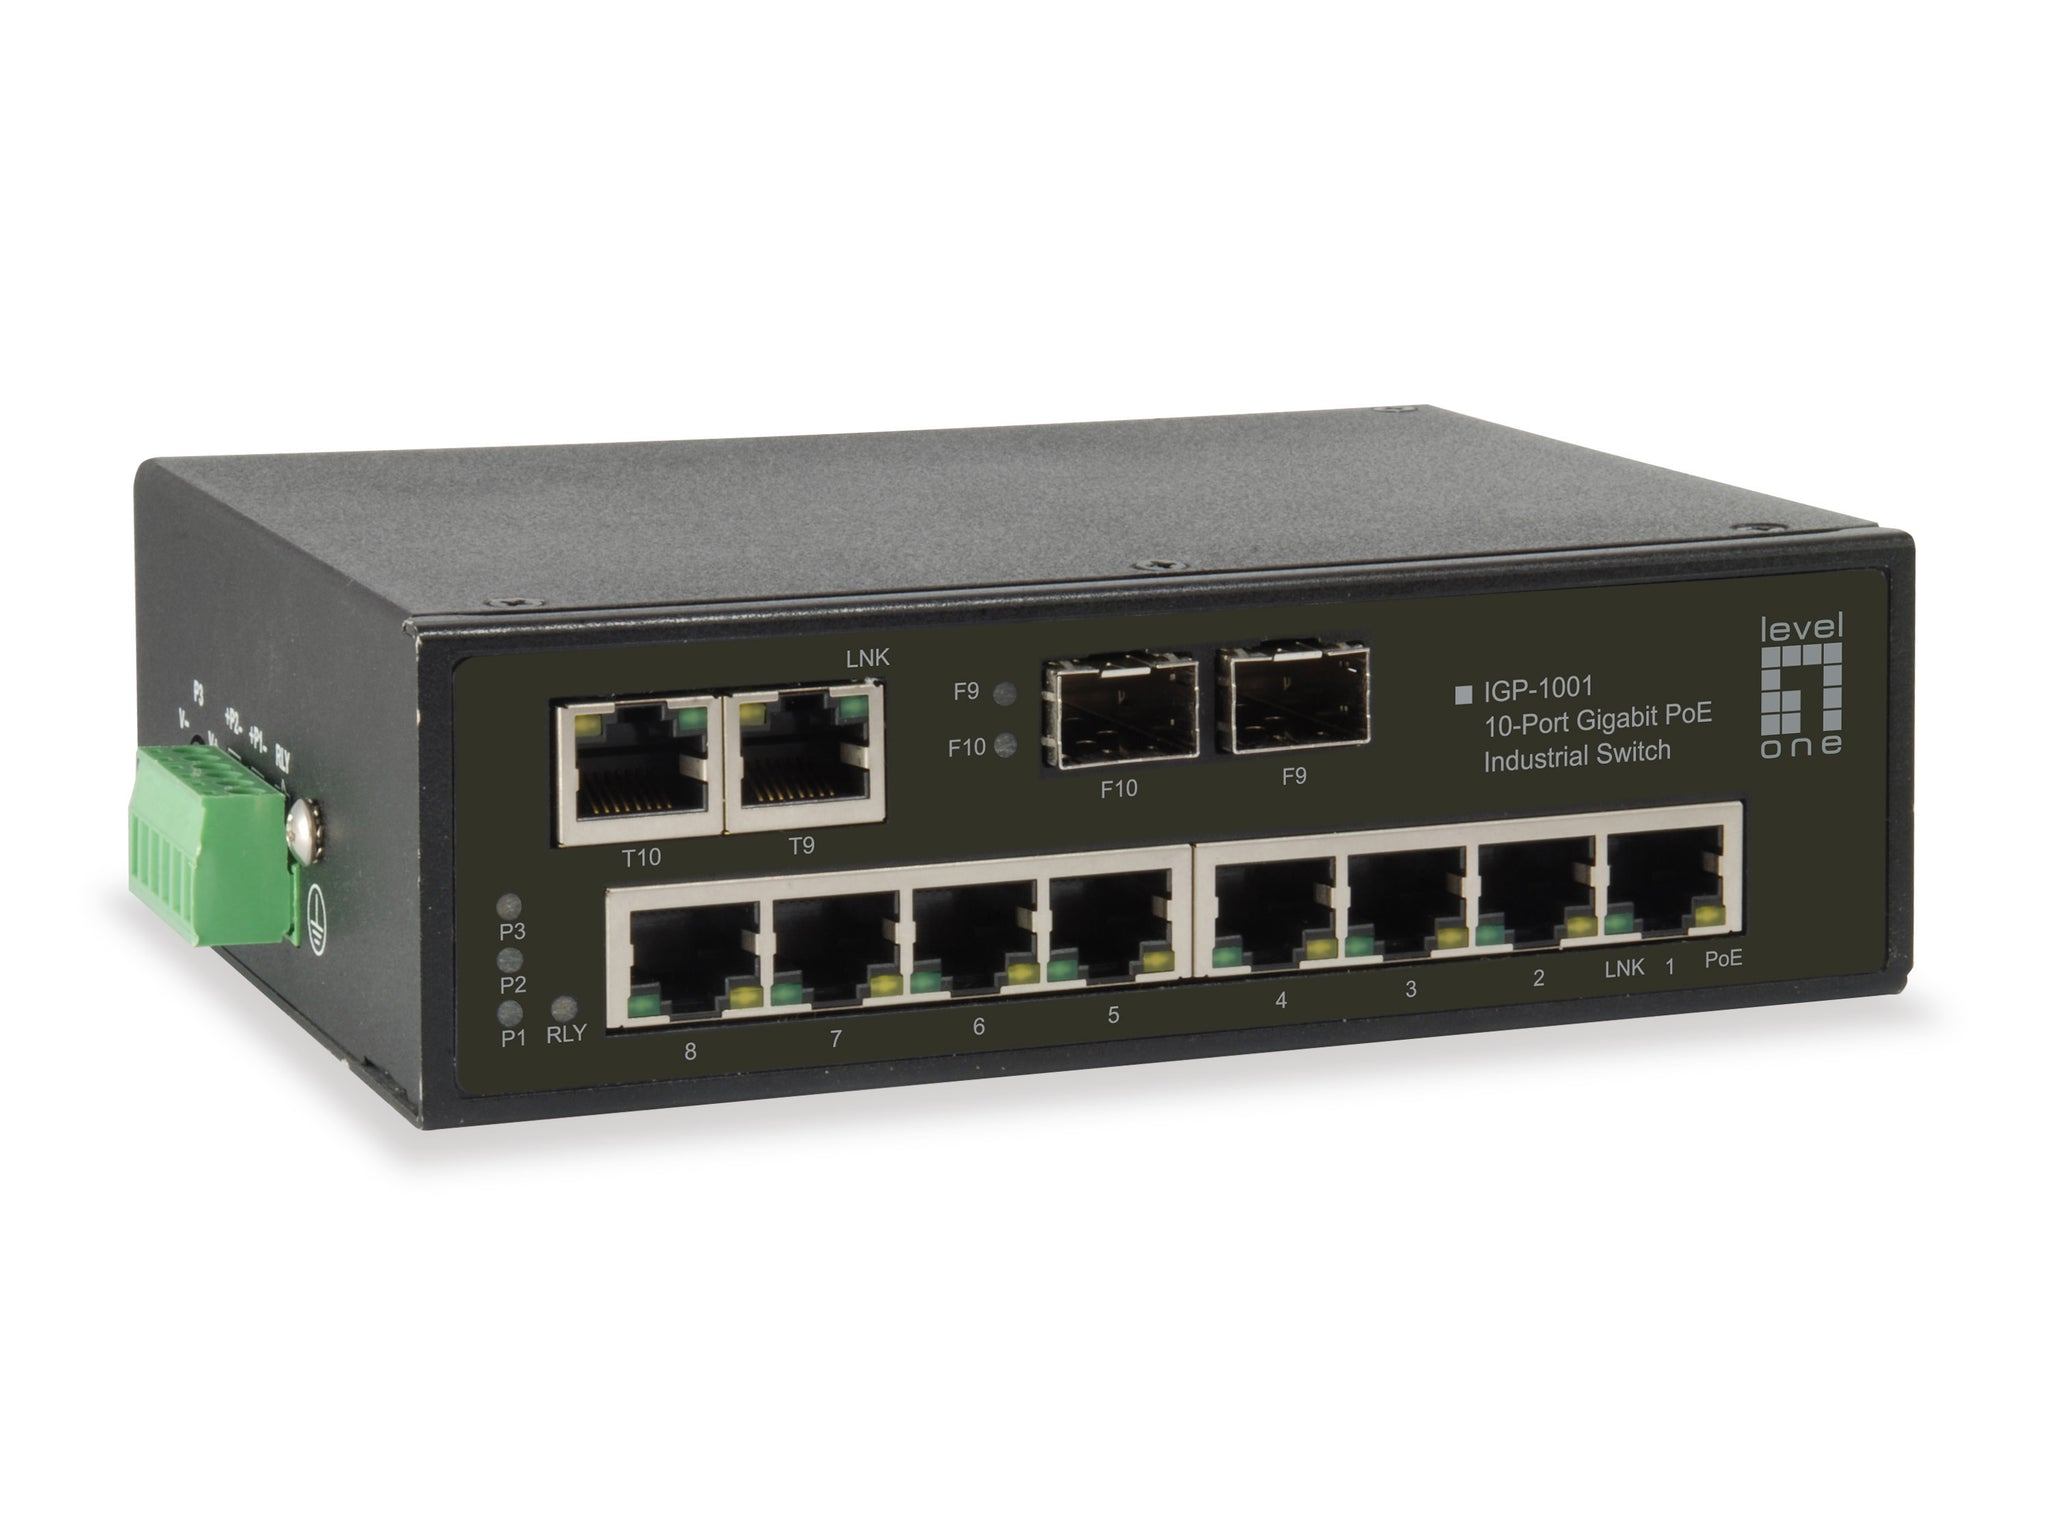 IGP-1001 10-Port Gigabit PoE Industrial Switch, 8 PoE Outputs, 2 x Gigabit SFP/RJ45 Combo